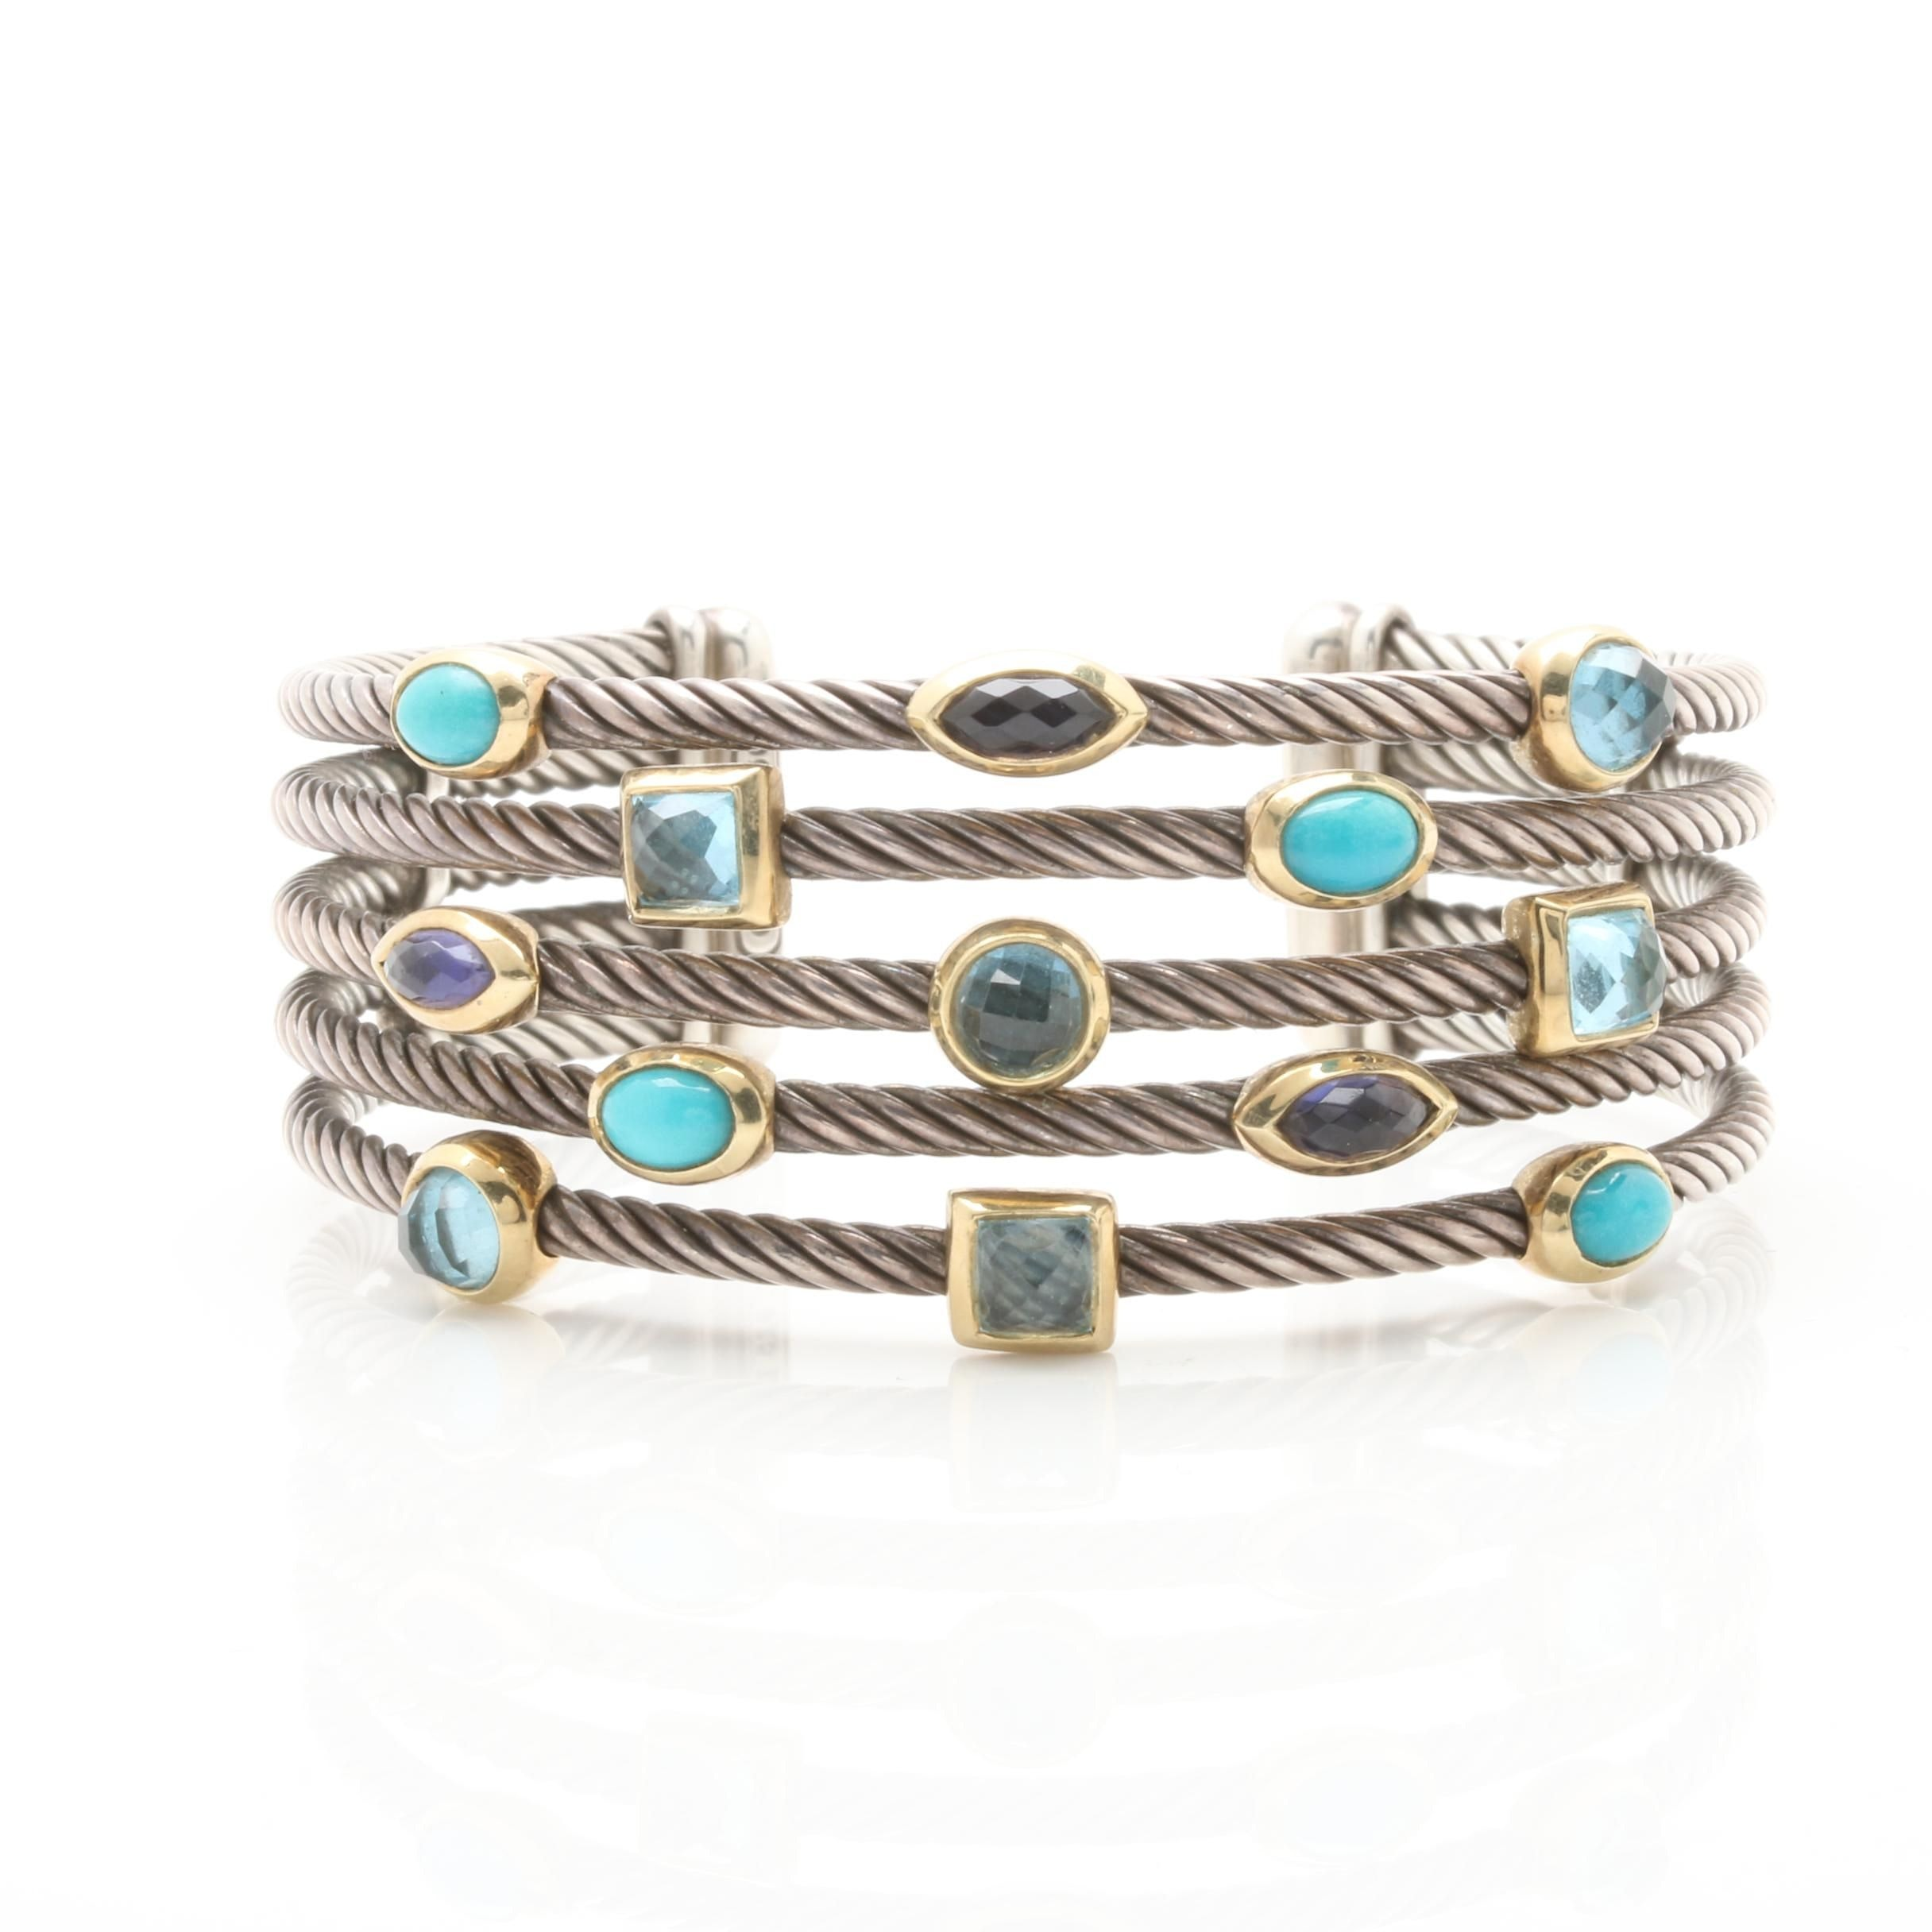 David Yurman Sterling Silver Topaz and Turquoise Bracelet with 18K Yellow Gold